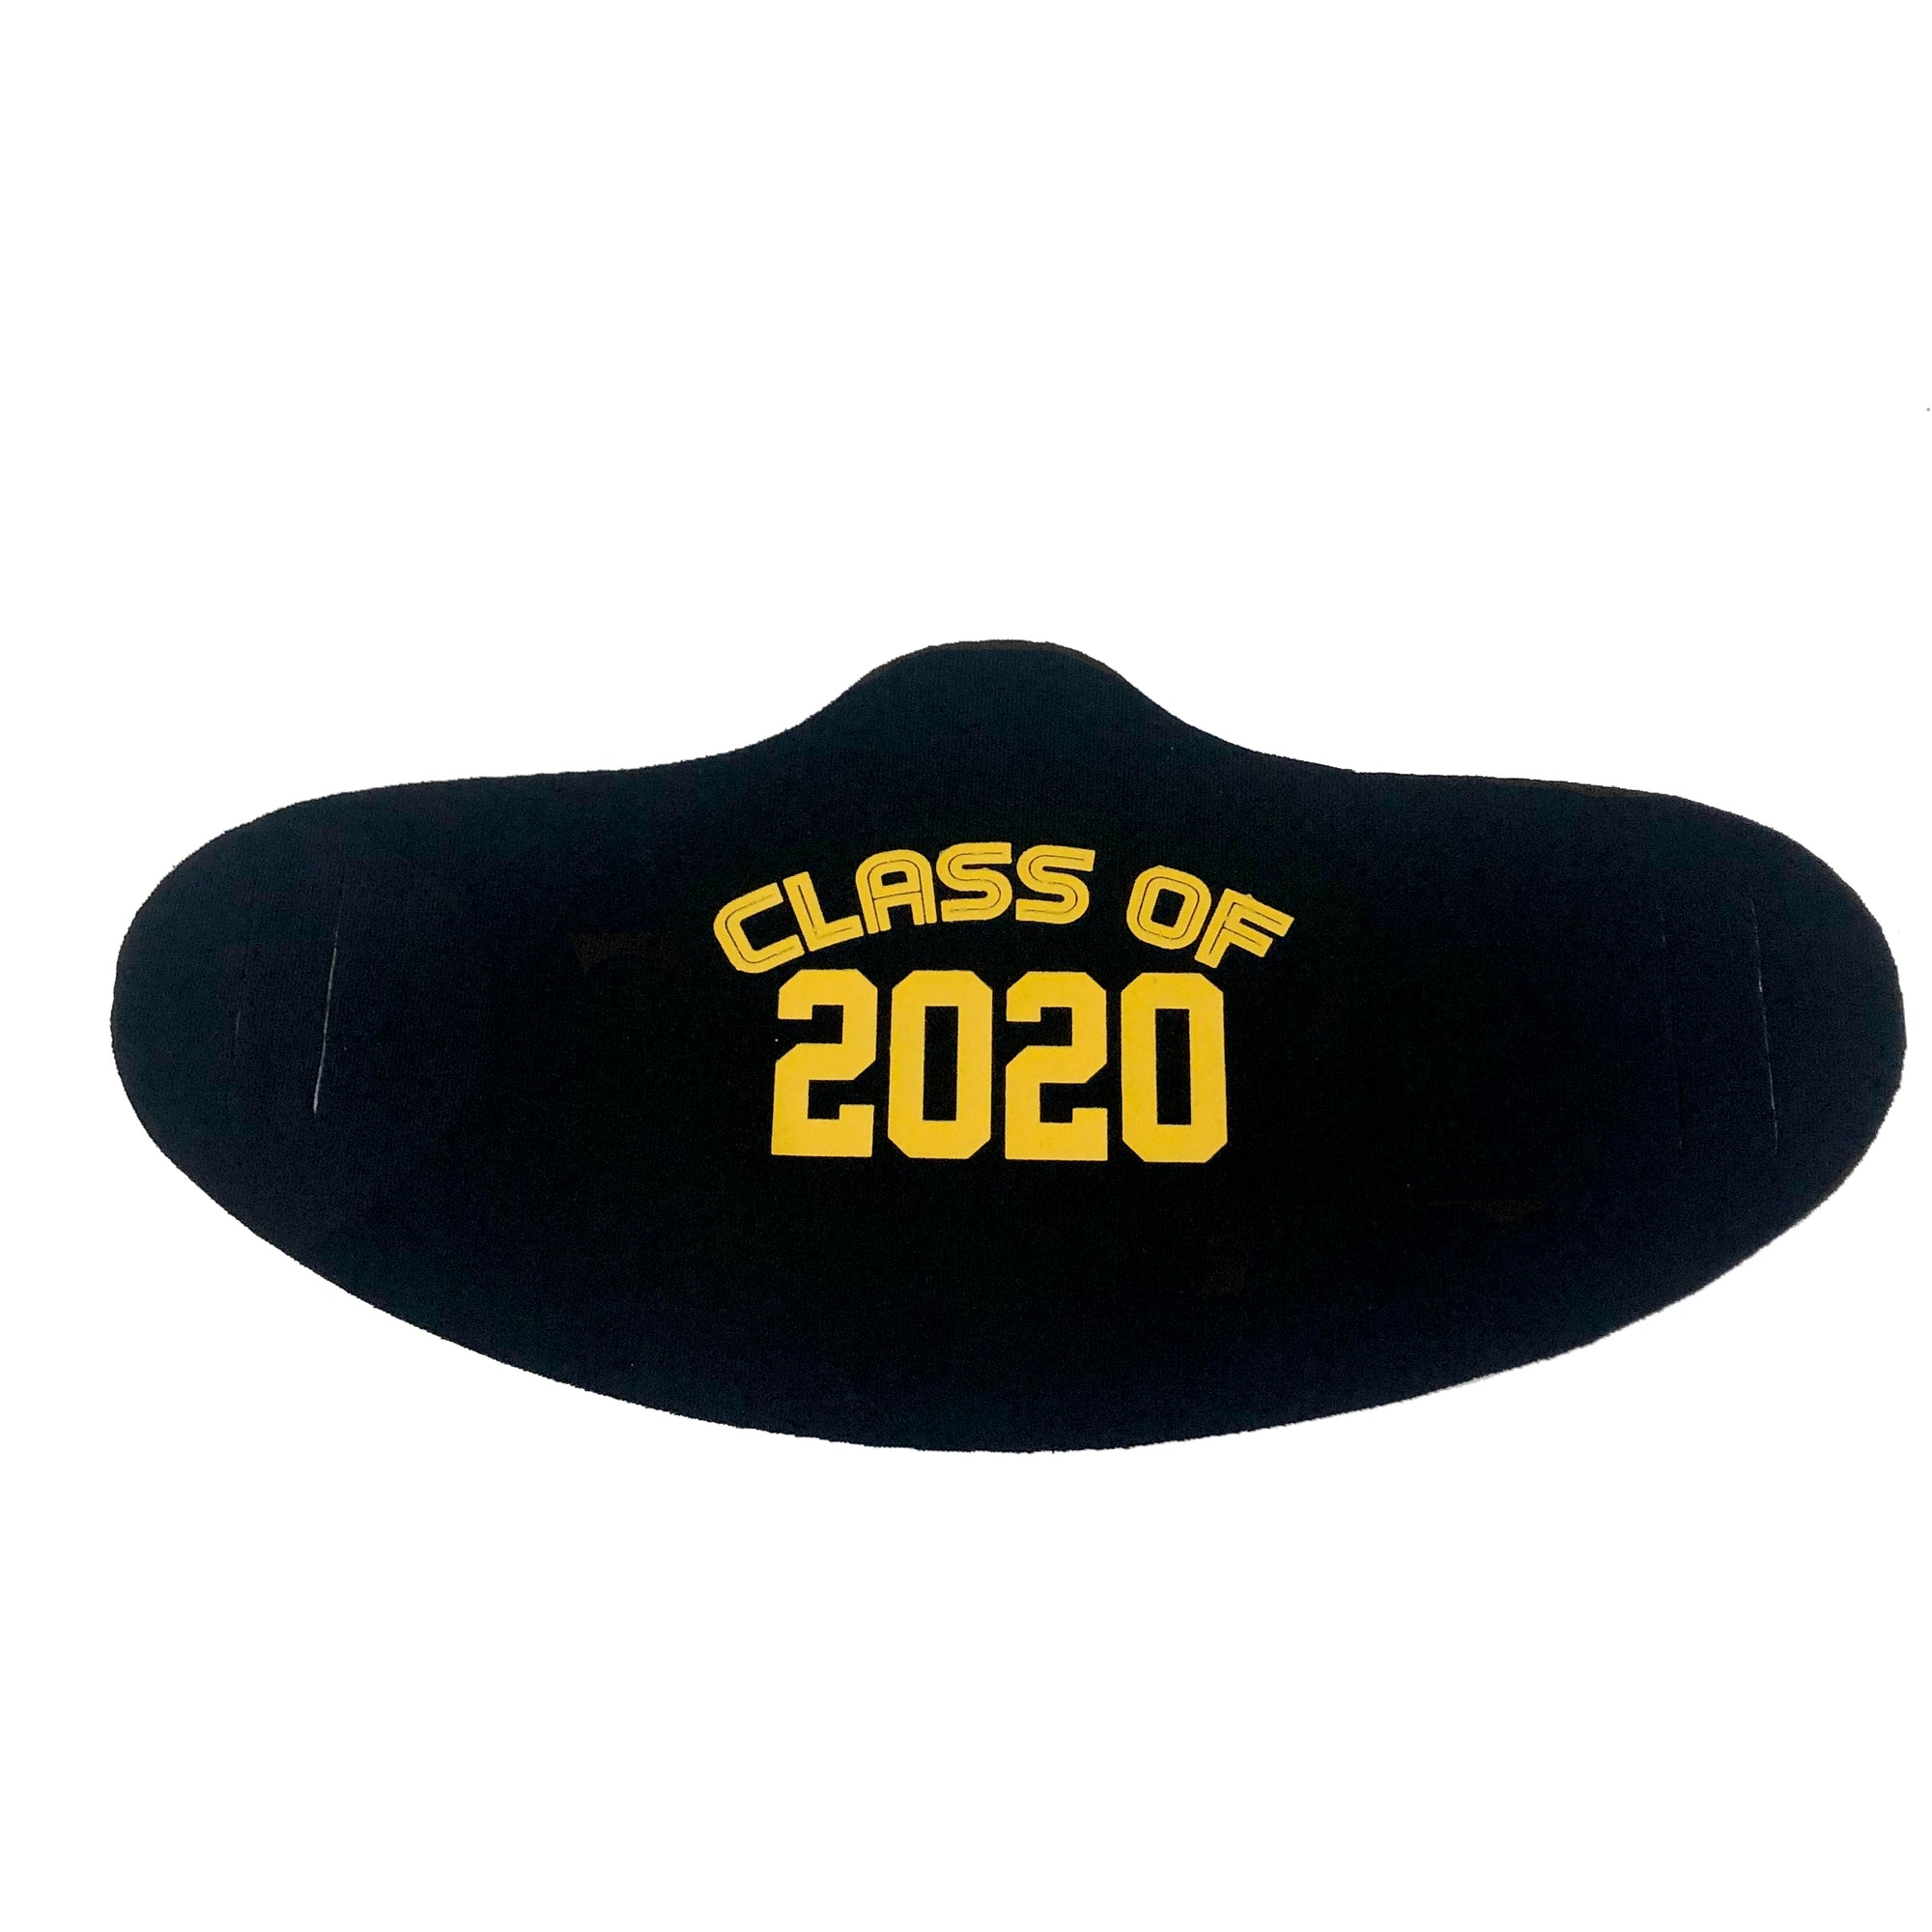 "Daily Face Cover with ""Class of 2020"" Printed"